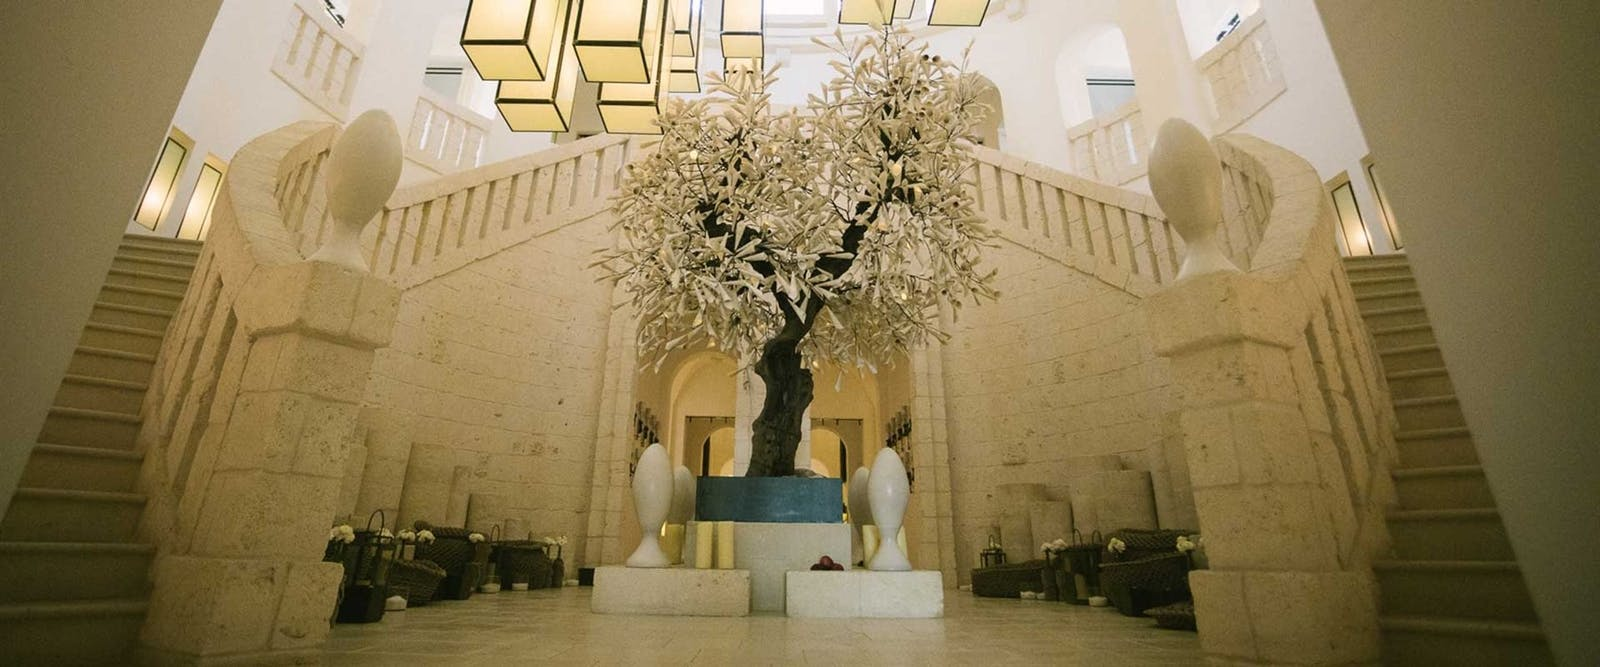 Beautiful Lobby at Borgo Egnazia, Pulgia, Italy